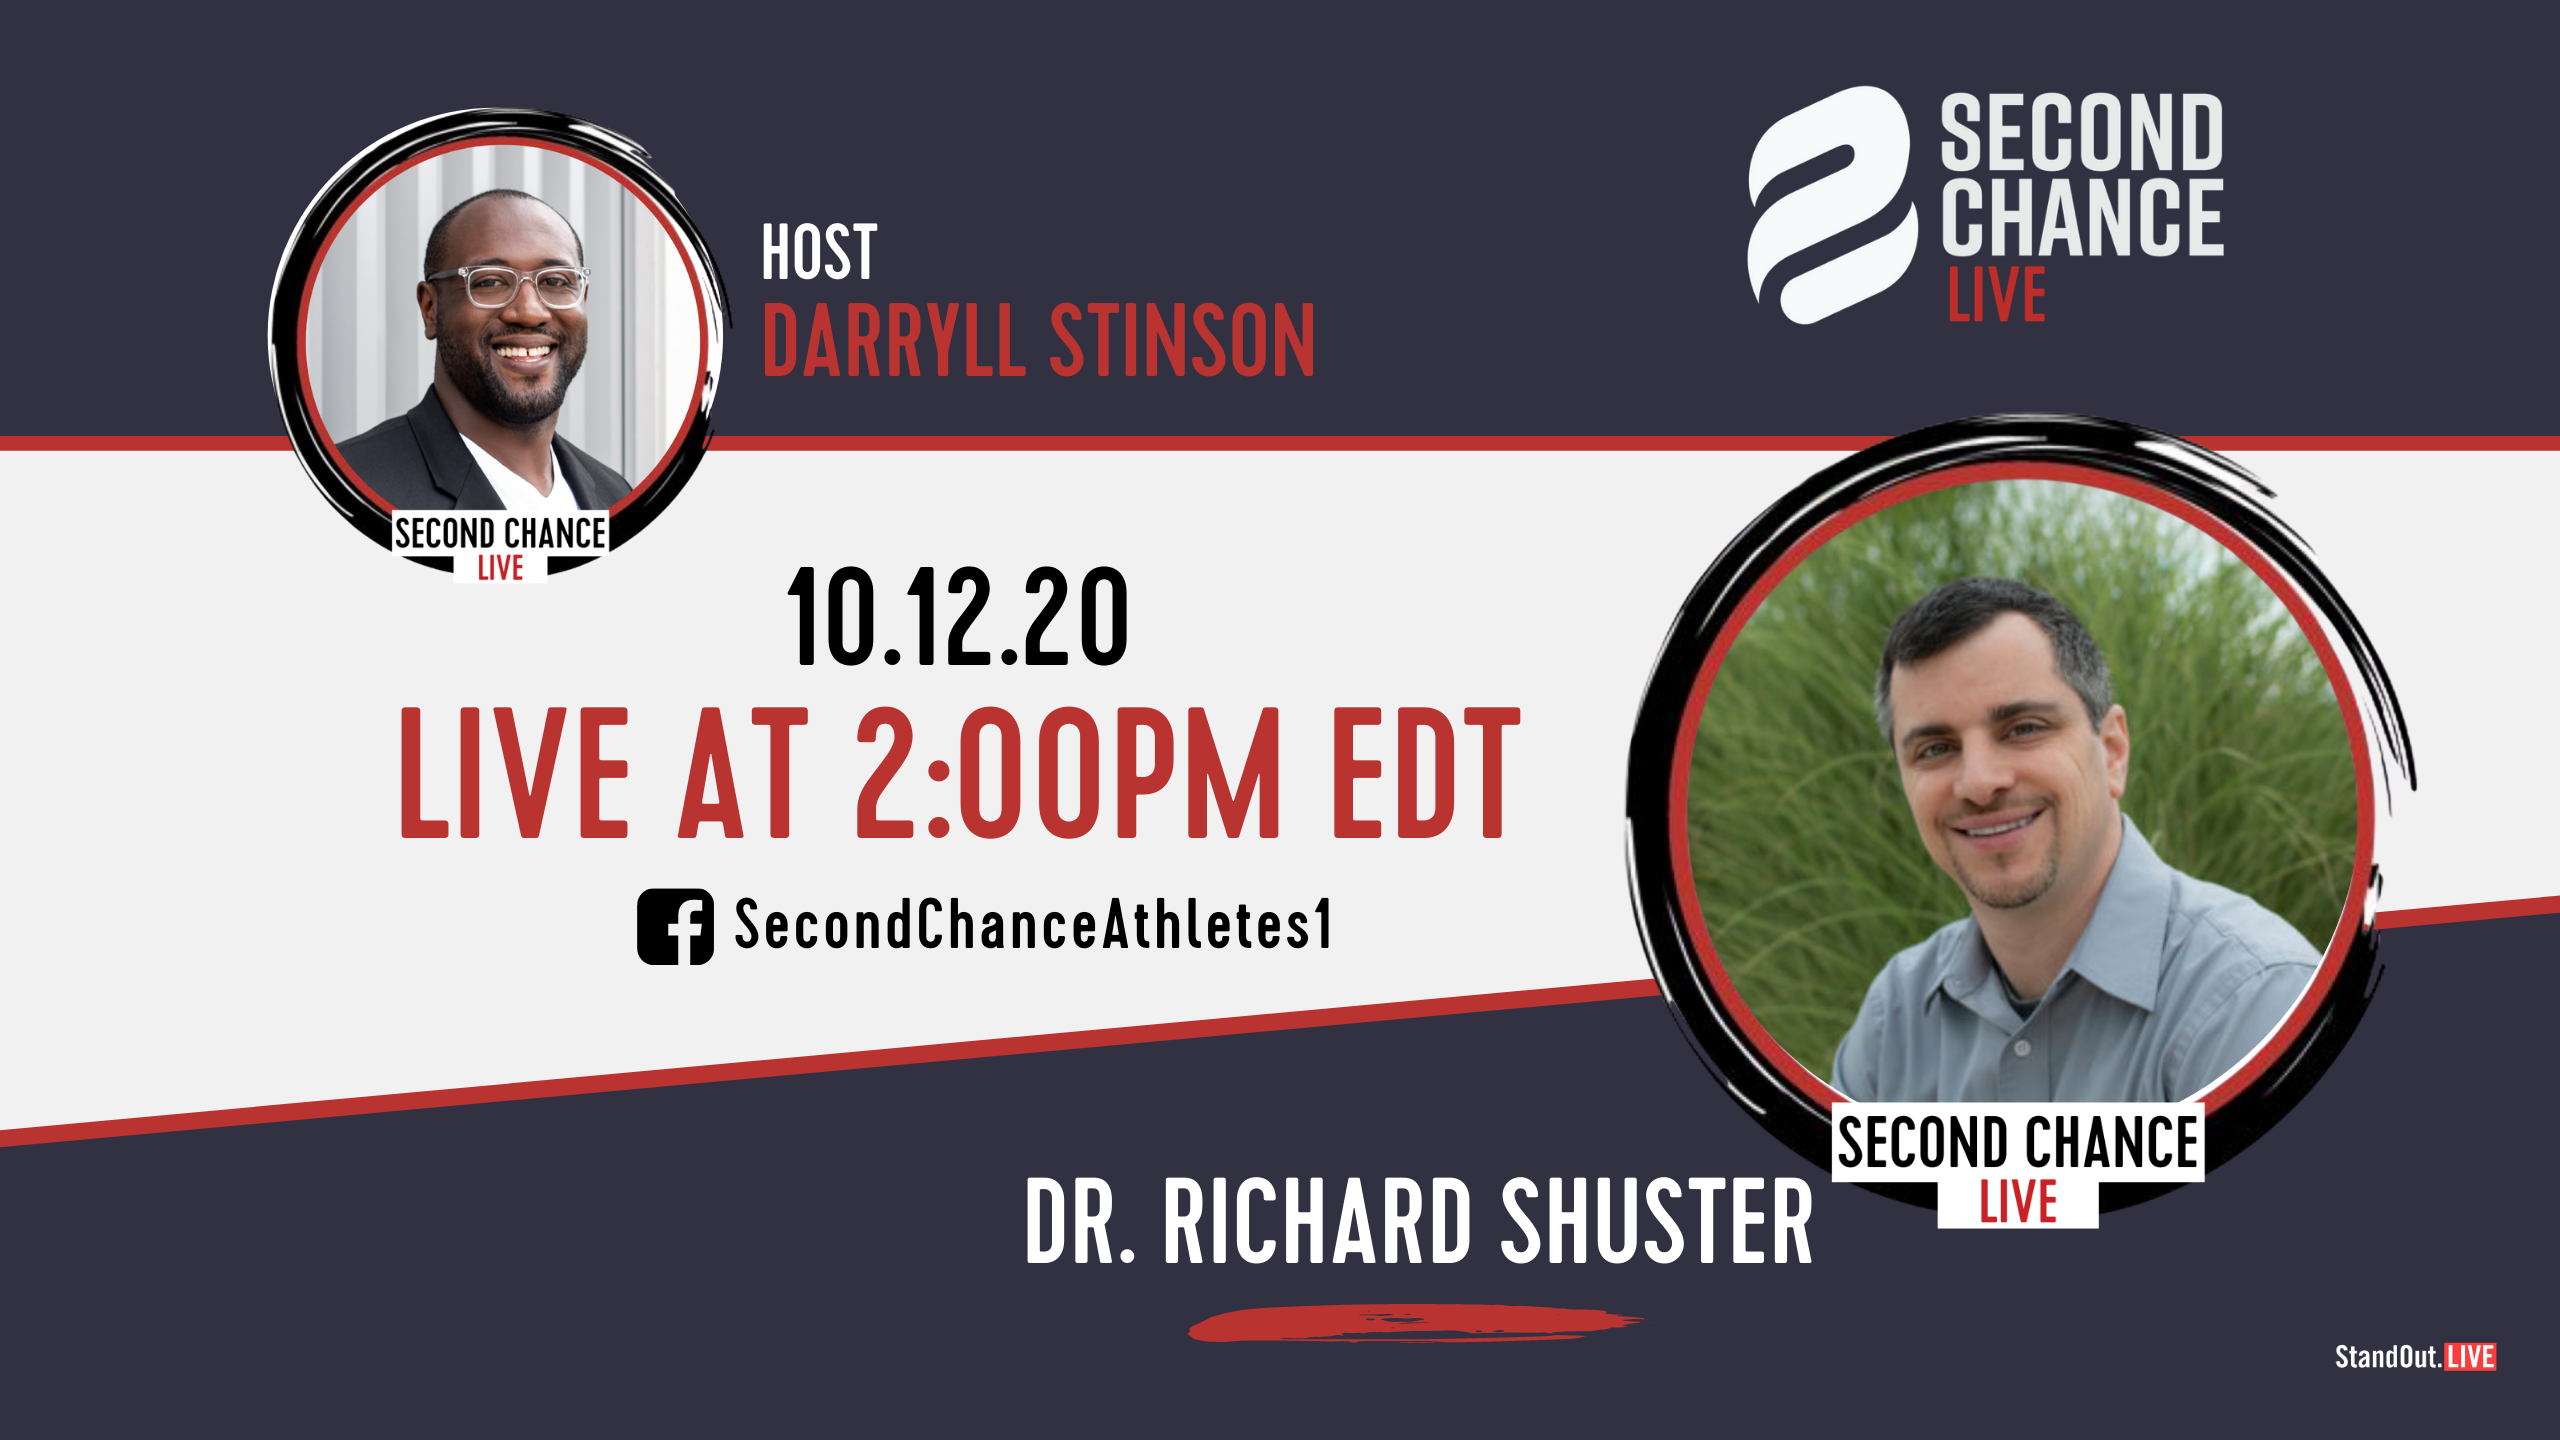 Second Chance LIVE -with Dr. Richard Shuster